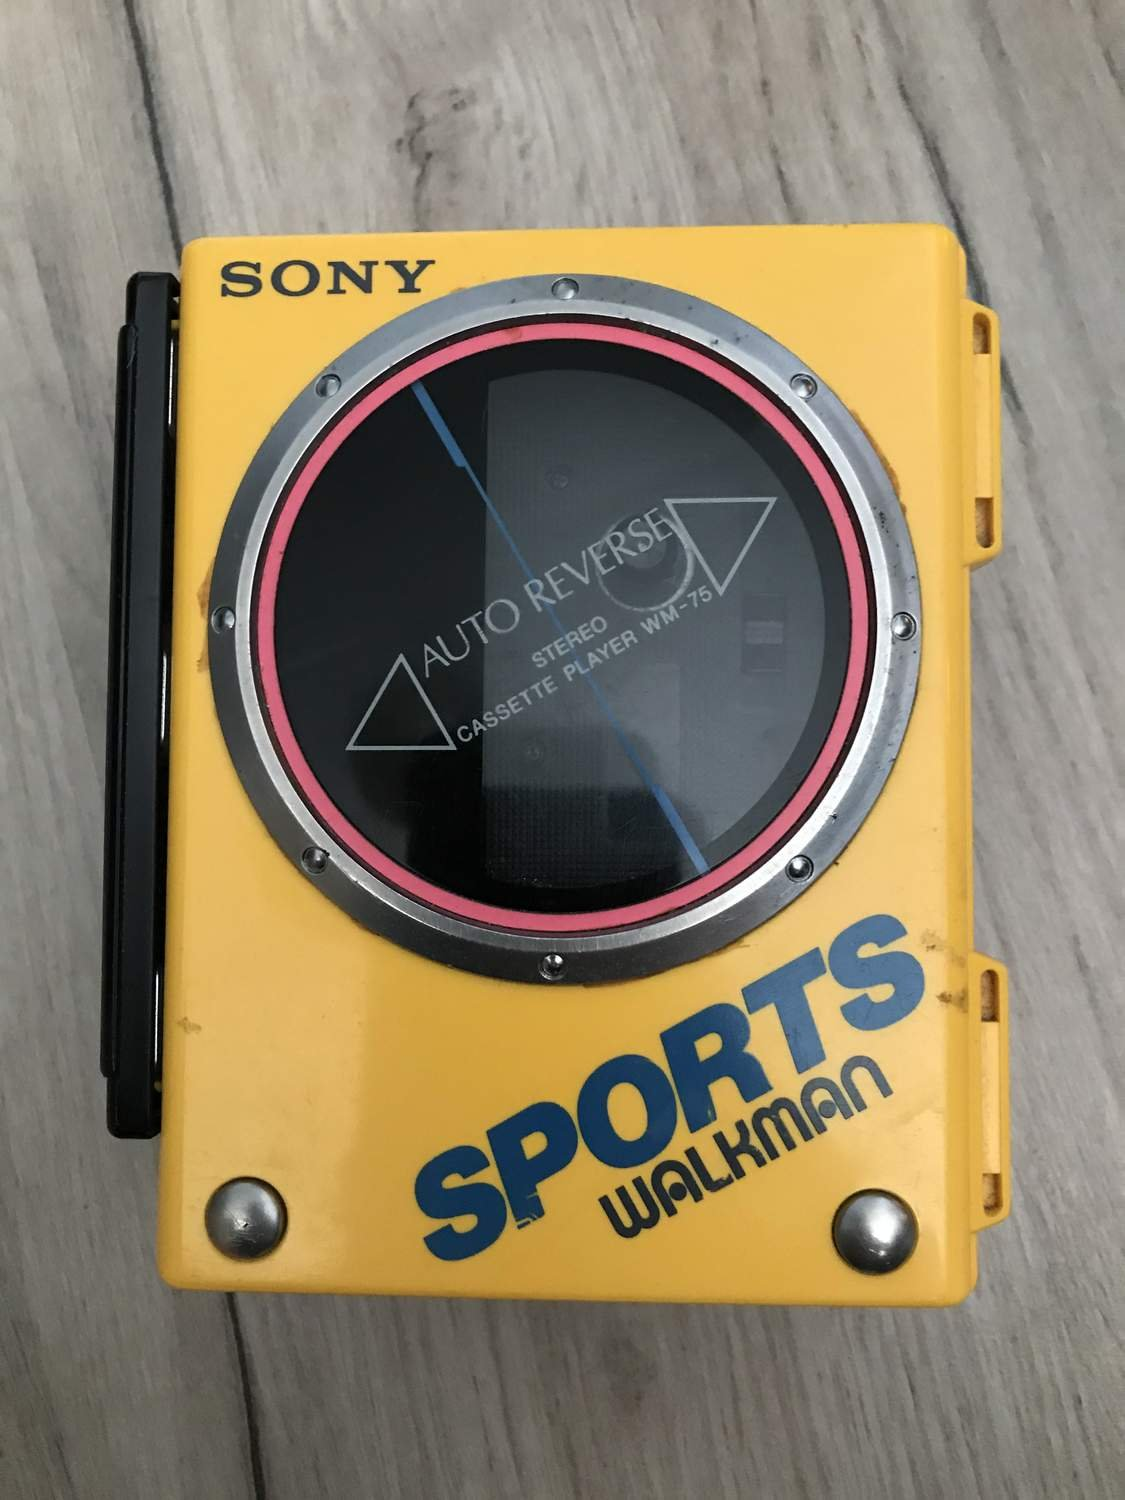 Sony Sports Walkman WM-75 Kassetbandspelare